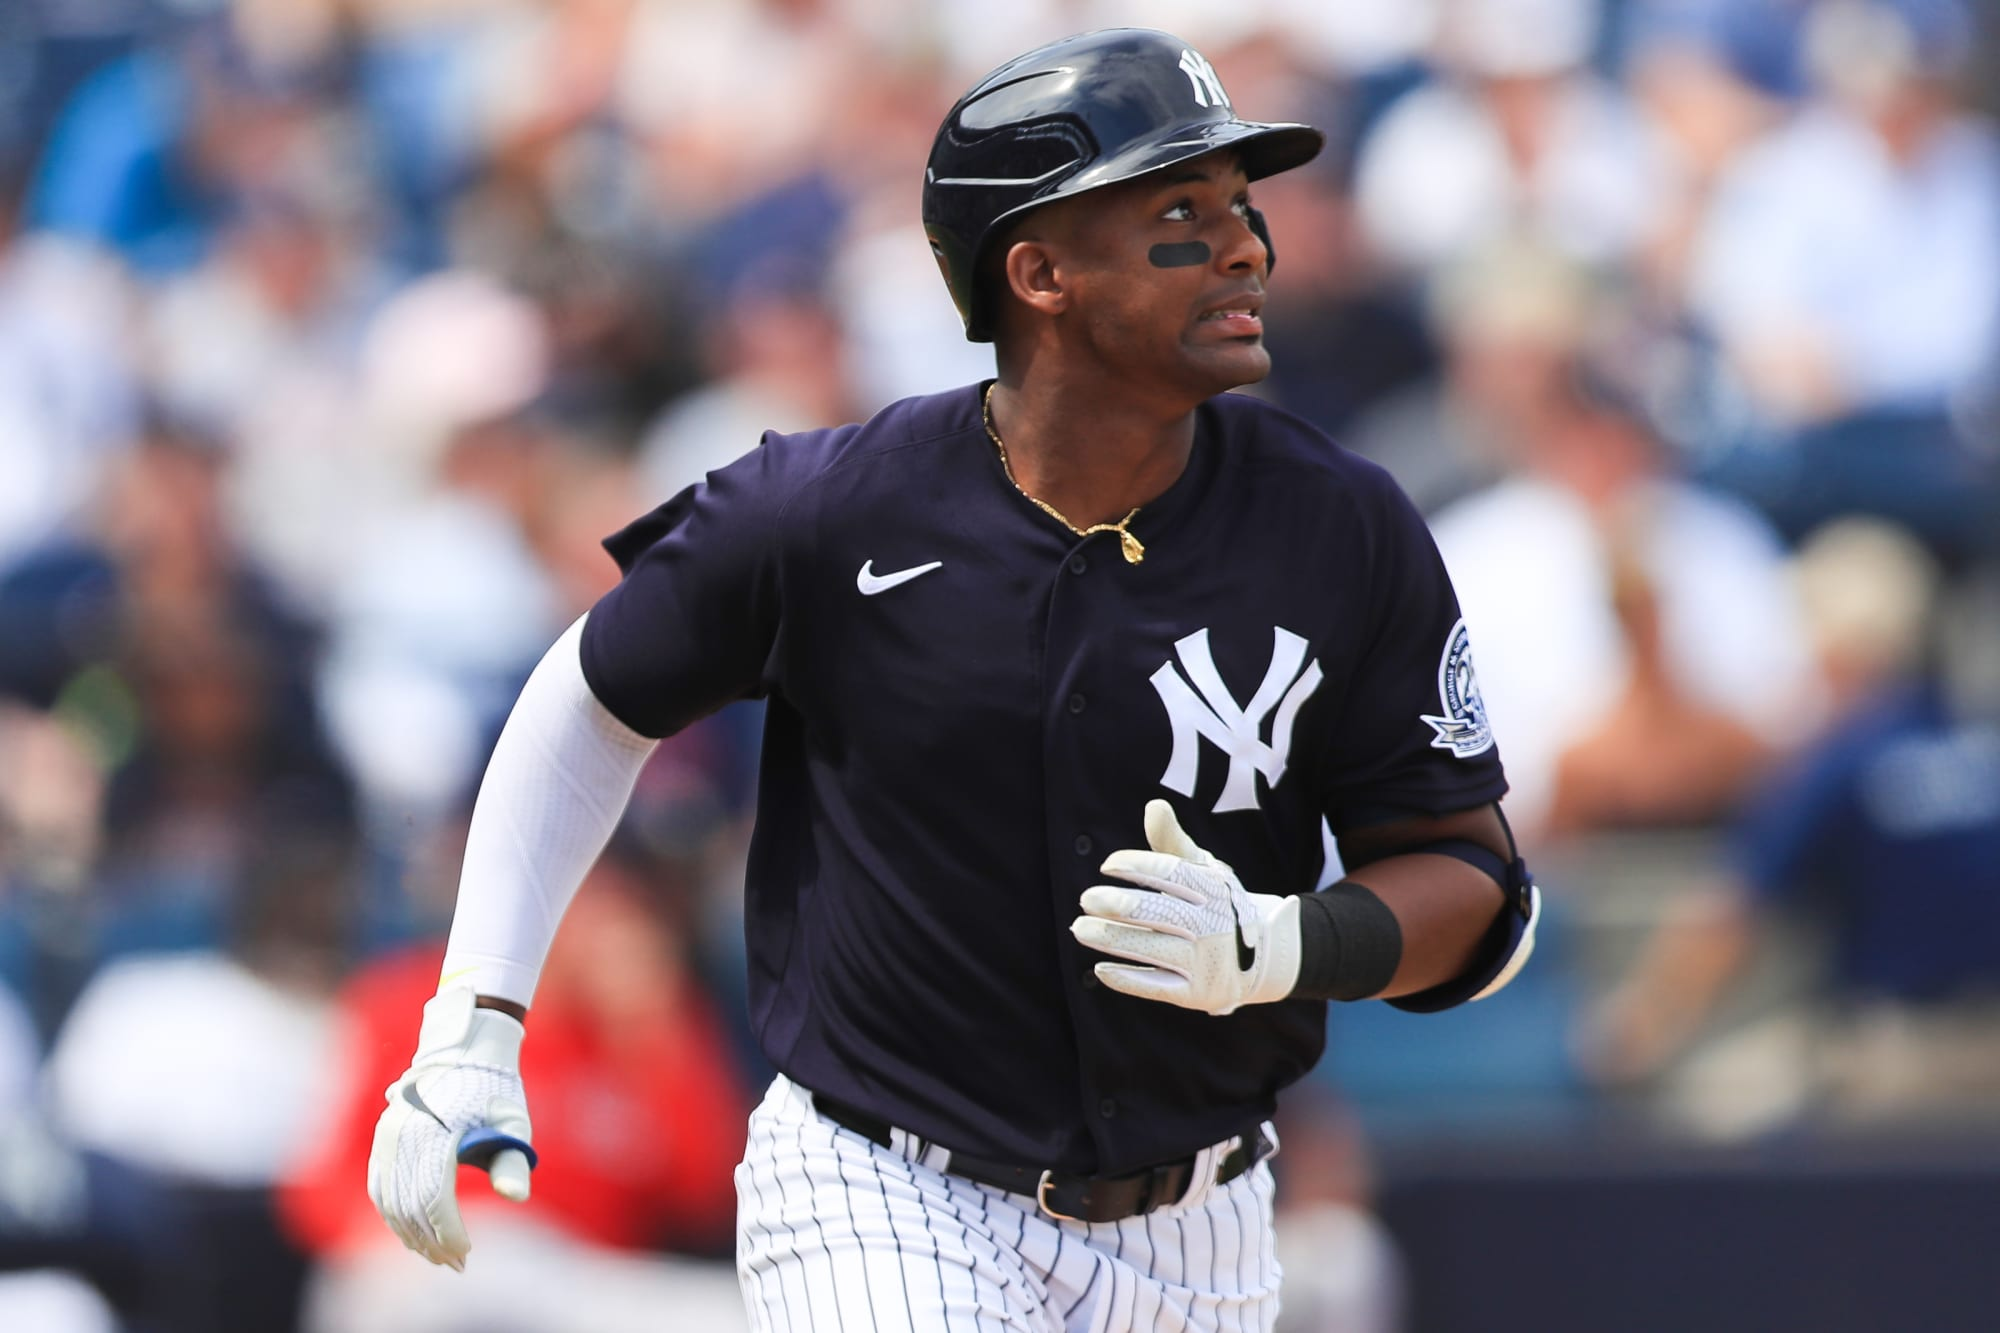 Yankees: Miguel Andujar's Hot Start Could Take Playing Time Away From Others